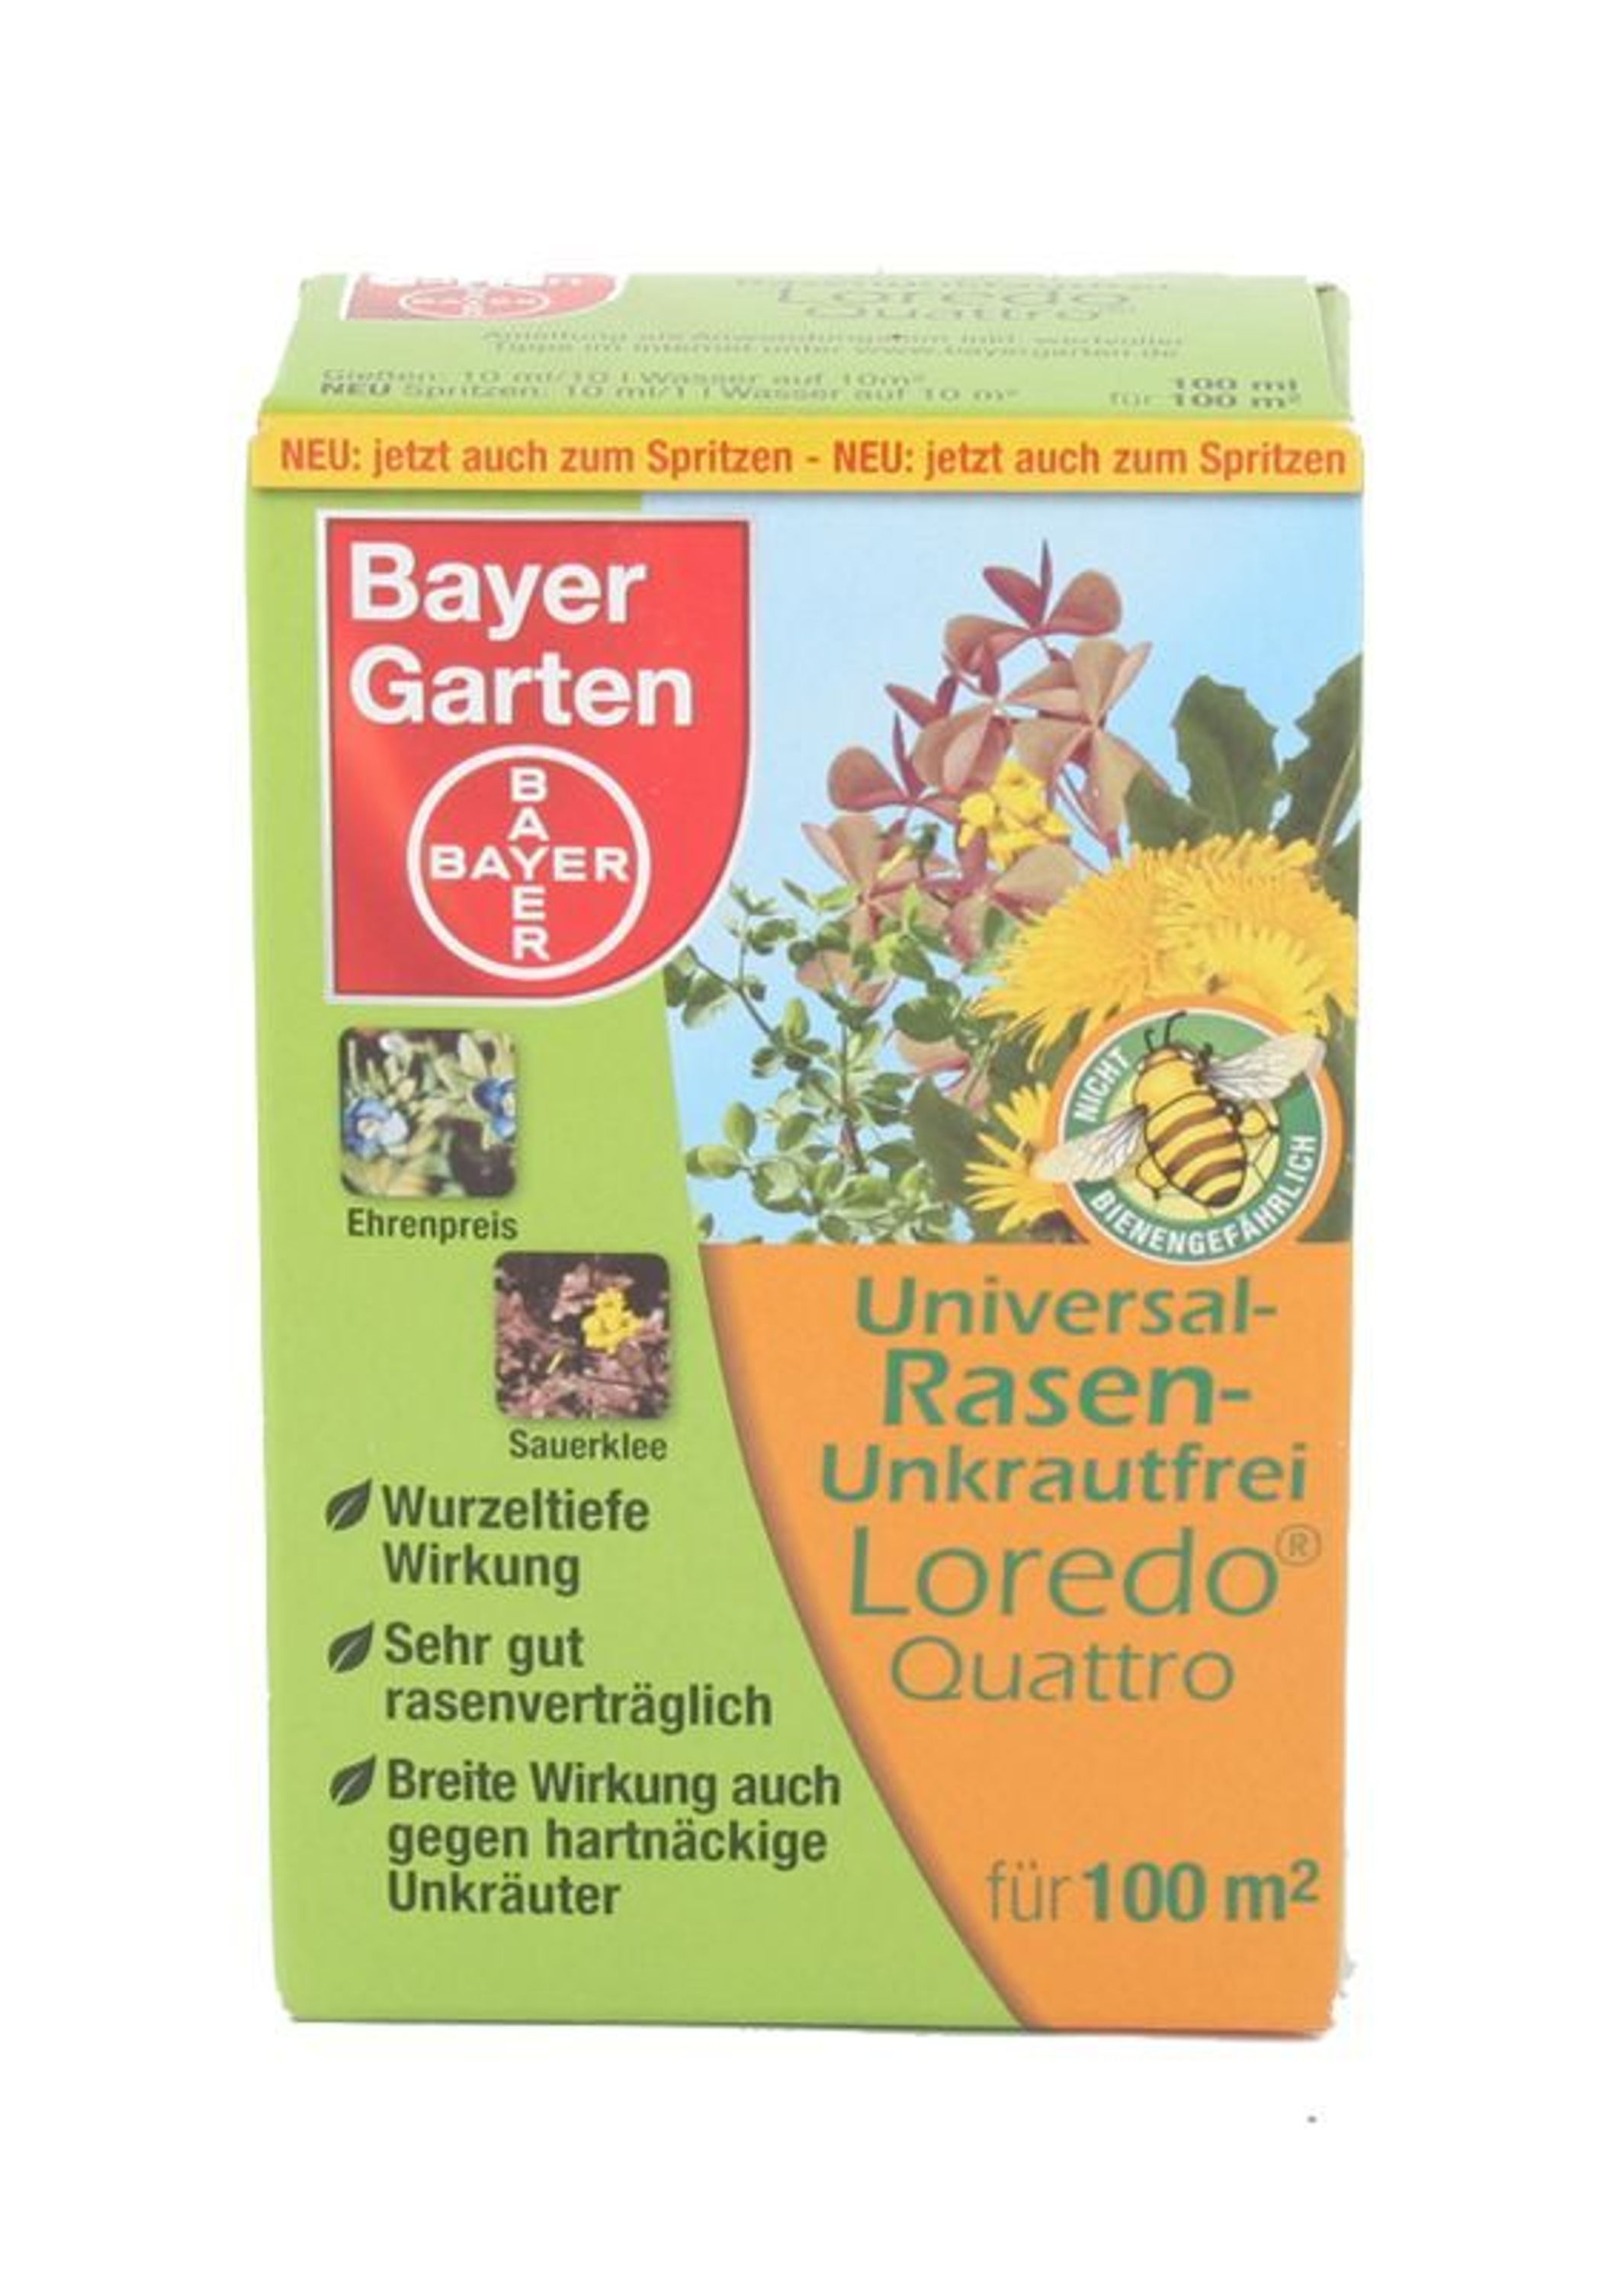 bayer universal rasen unkrautfrei loredo quattro 100 ml. Black Bedroom Furniture Sets. Home Design Ideas